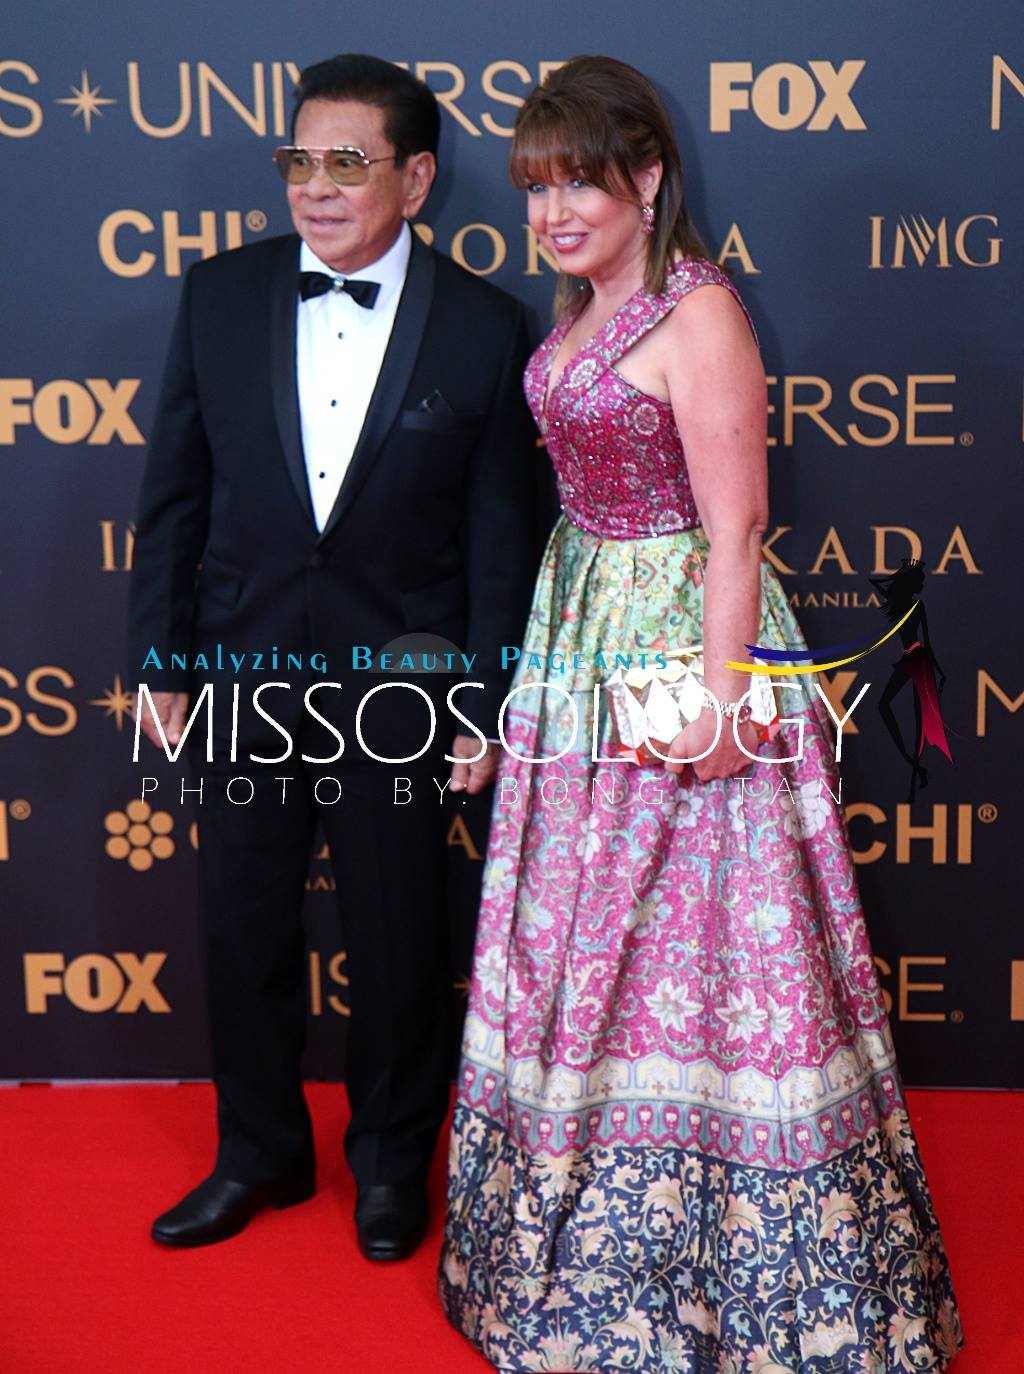 Former Ilocos Sur governor Chavit Singson with Miss Universe Organization president Paula Shugart during the 65th Miss Universe red carpet